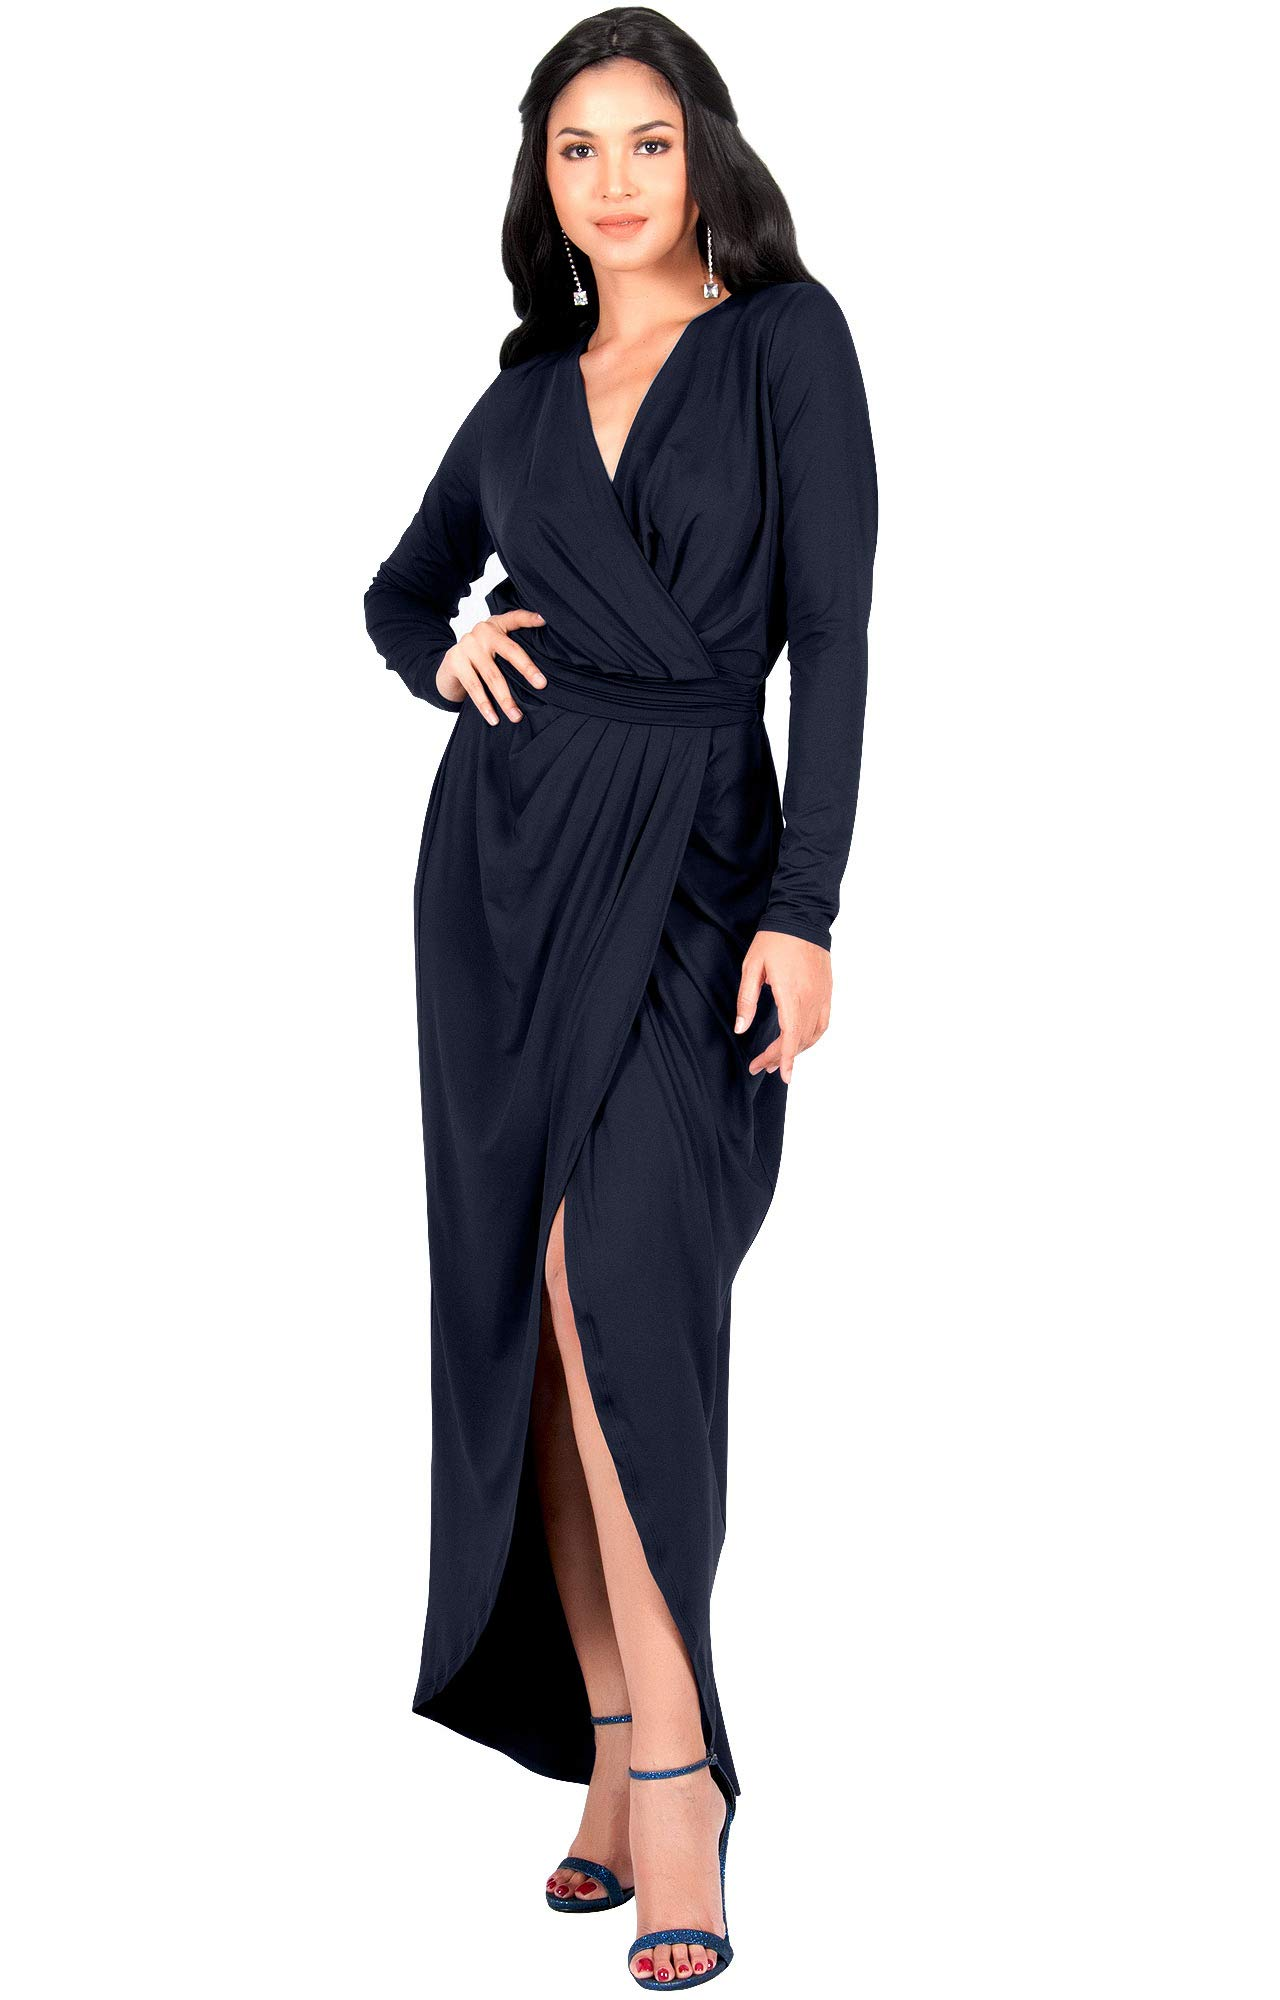 13bd63dcd09 ... Empire Waist Formal Winter Fall Cocktail Wedding Evening Gown Gowns  Maxi Dress Dresses